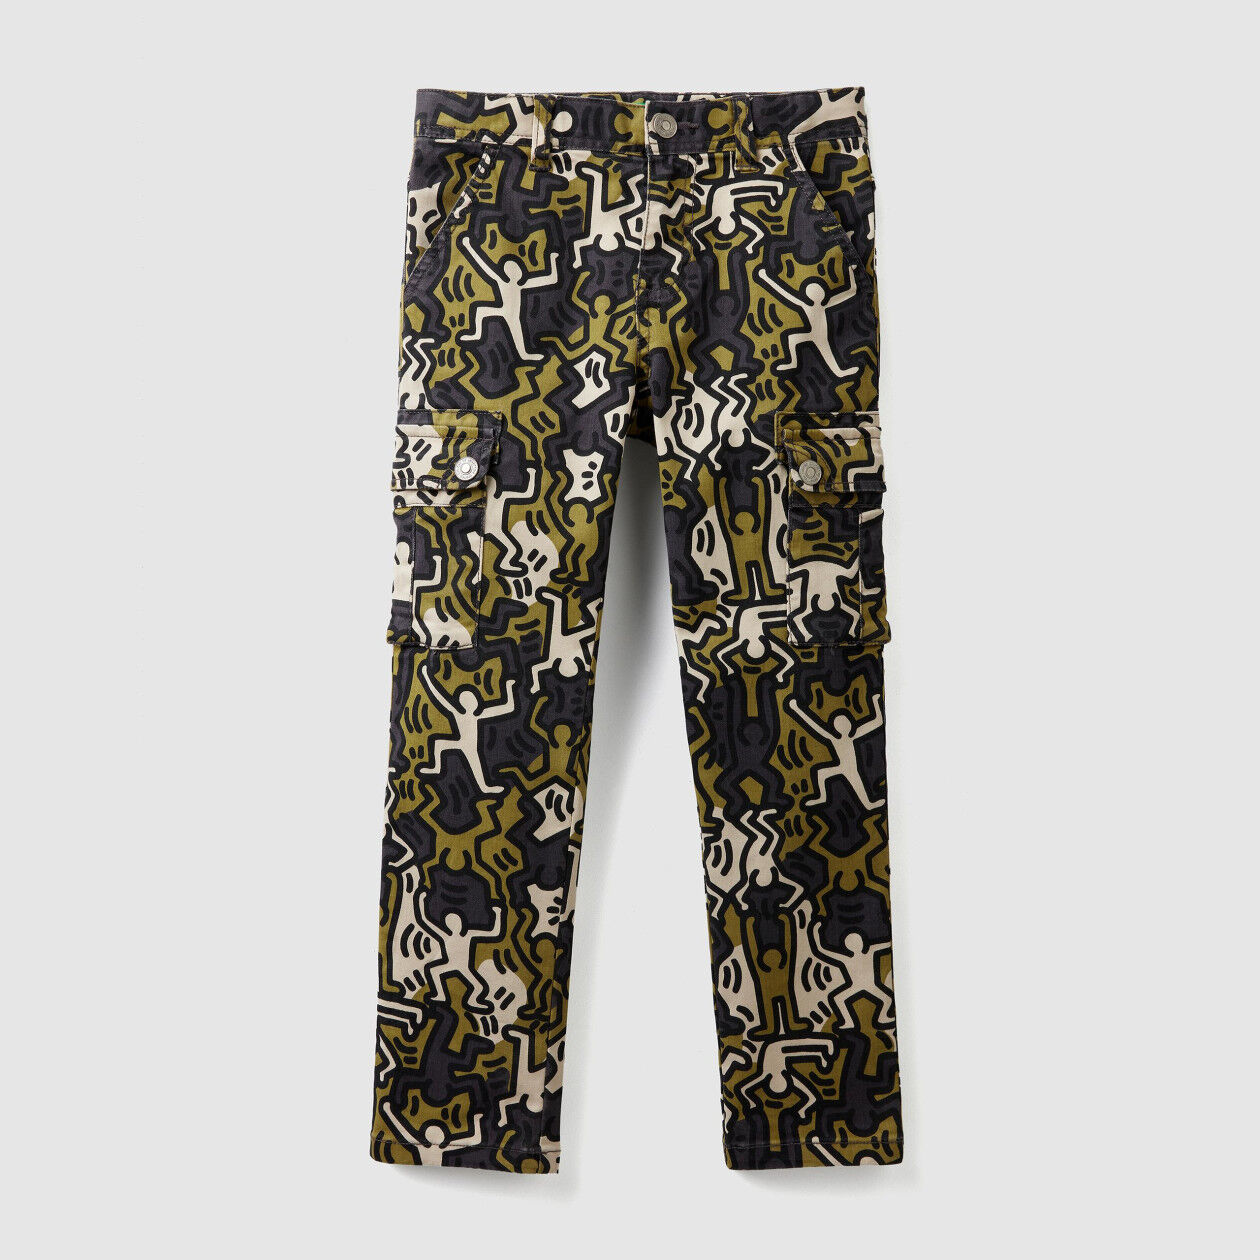 """Keith Haring"" cargo pants"